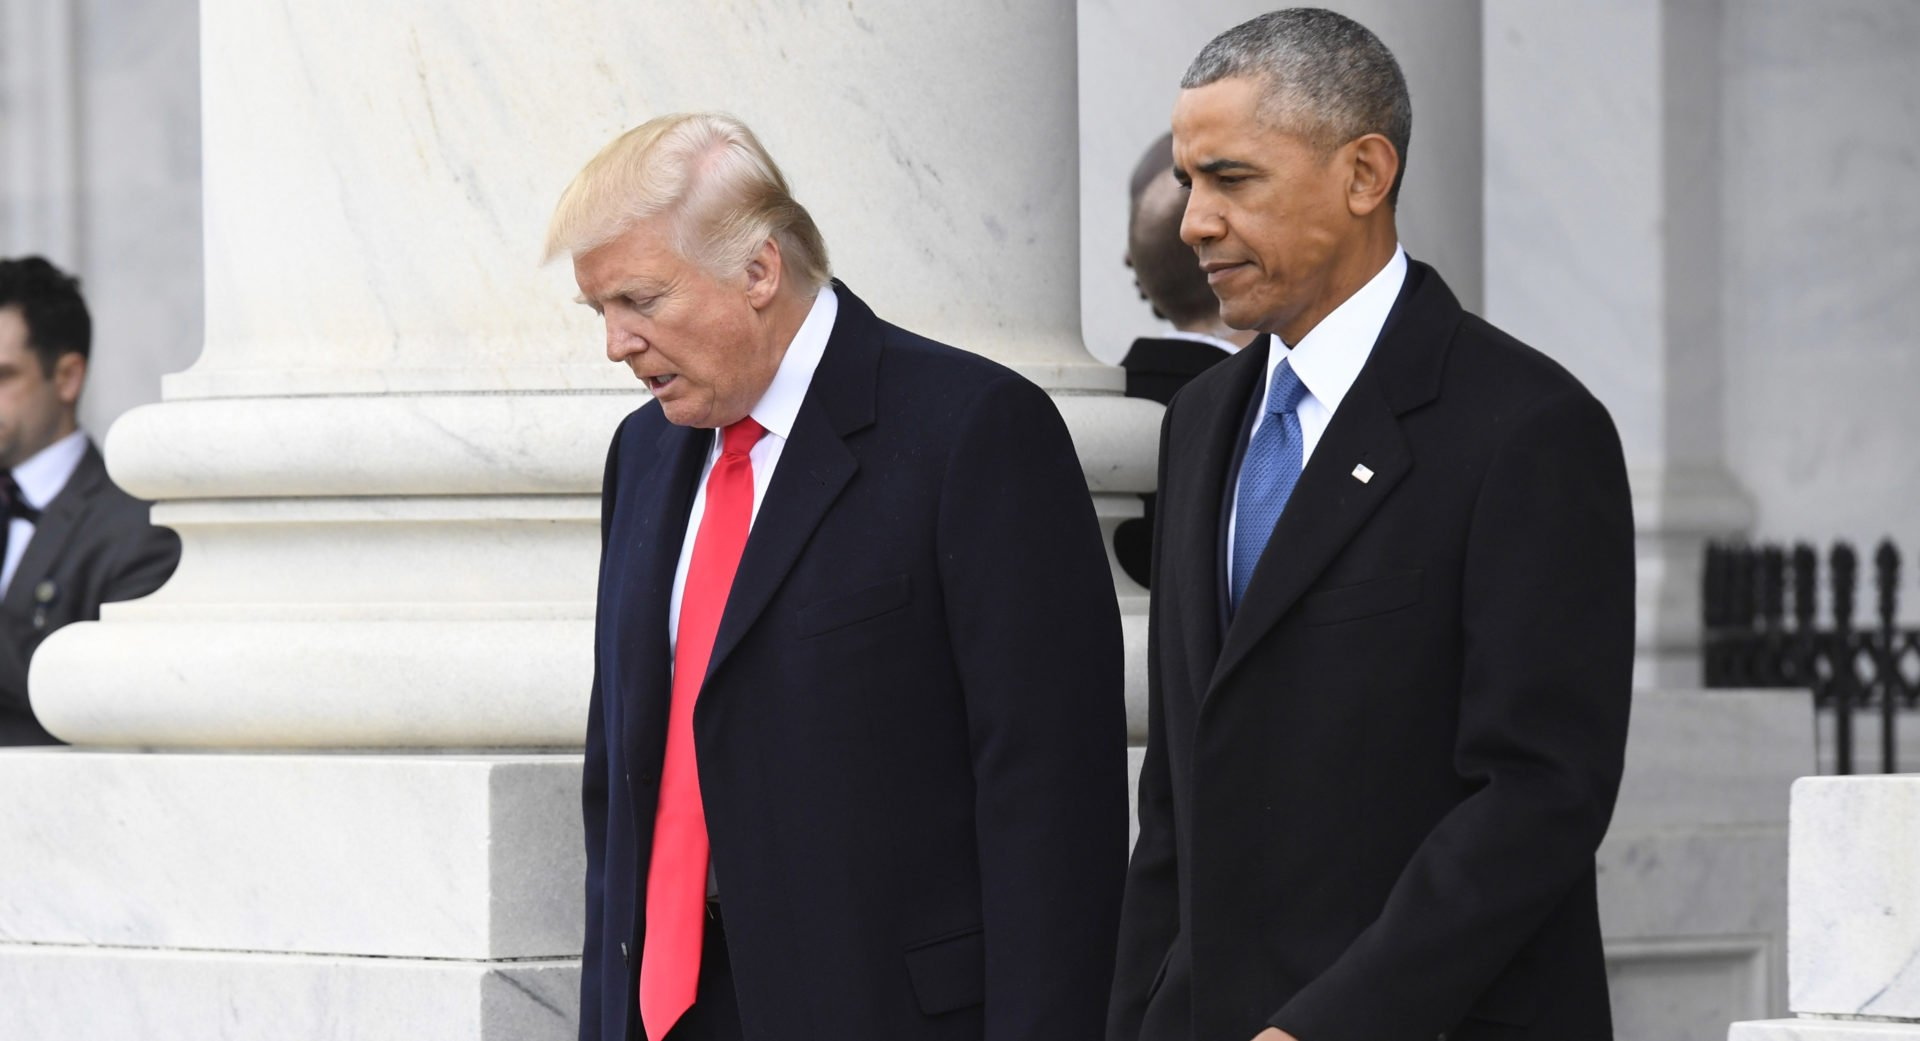 Trump asks why Obama didnt do something about Russian meddling